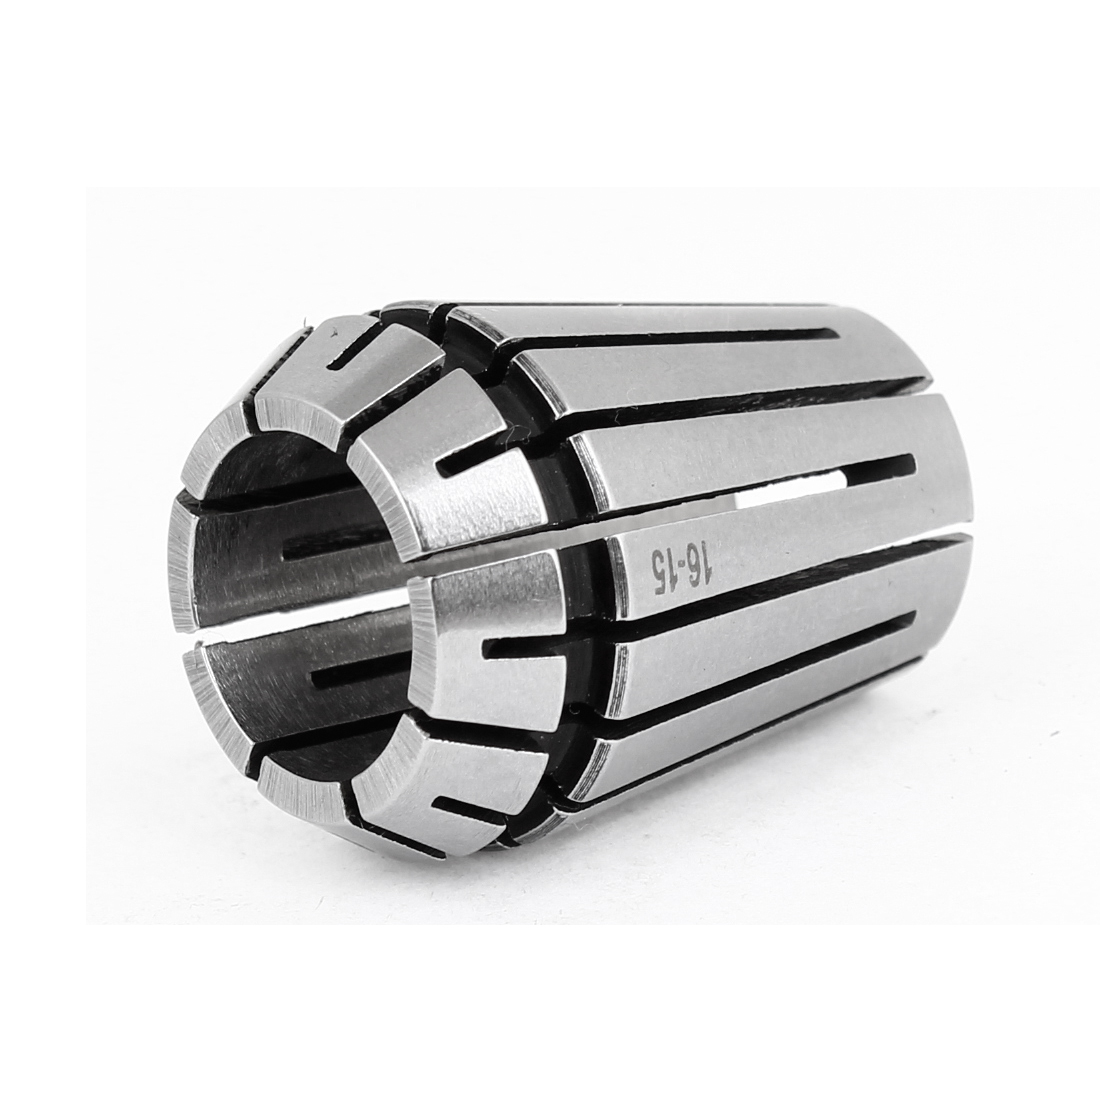 Clamping Range 16-15mm Stainless Steel ER25 Precision Spring Collet